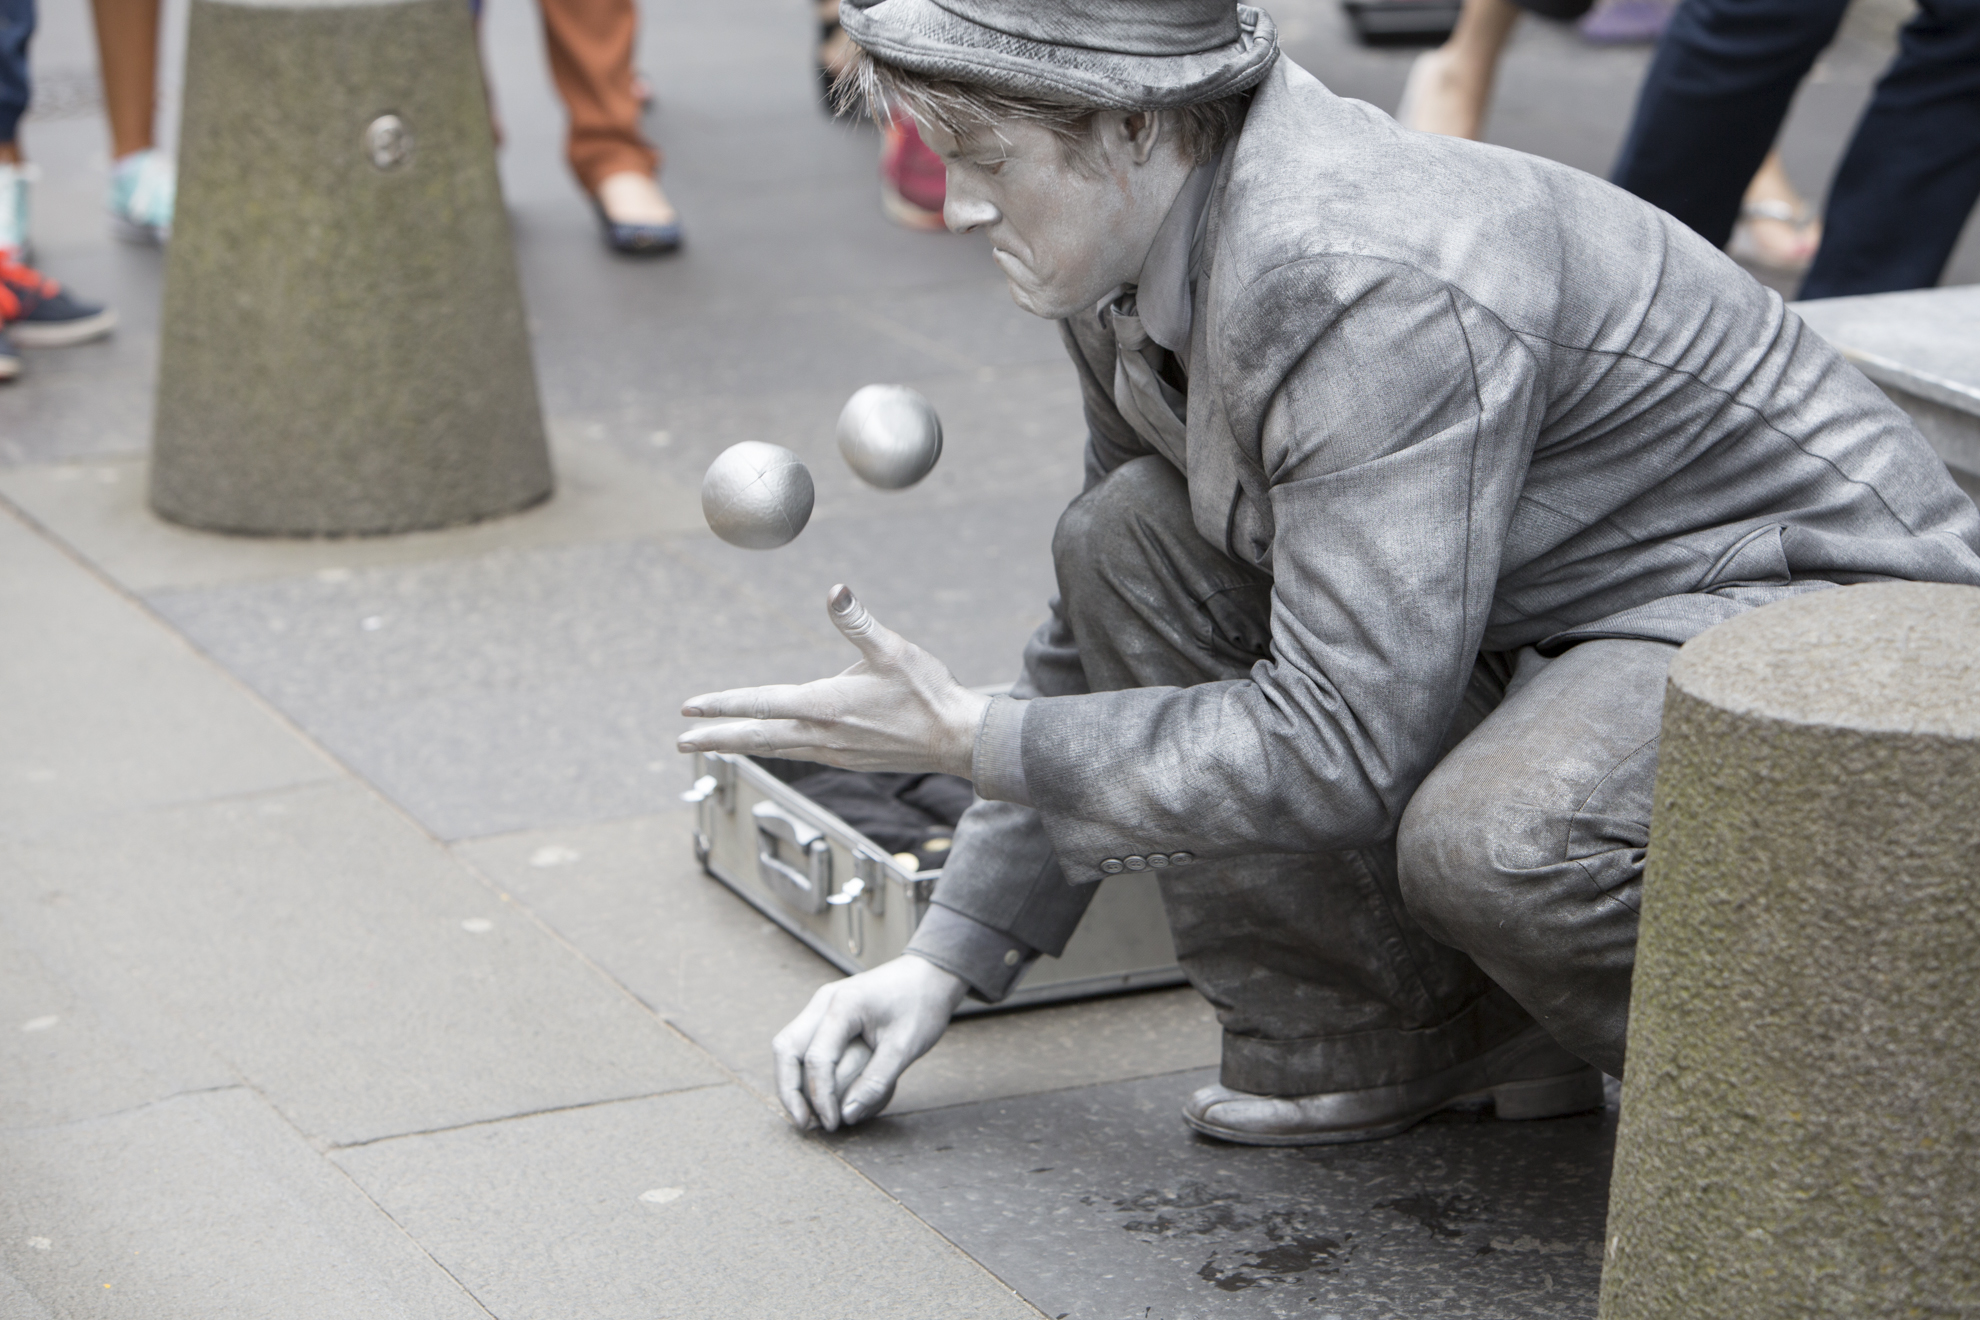 John Godbolt, from Bristol, England, performs as a juggling statue in front of St. Giles Cathedral on the Royal Mile during the 2014 Edinburgh Festival of the Fringe in Edinburgh, Scotland.